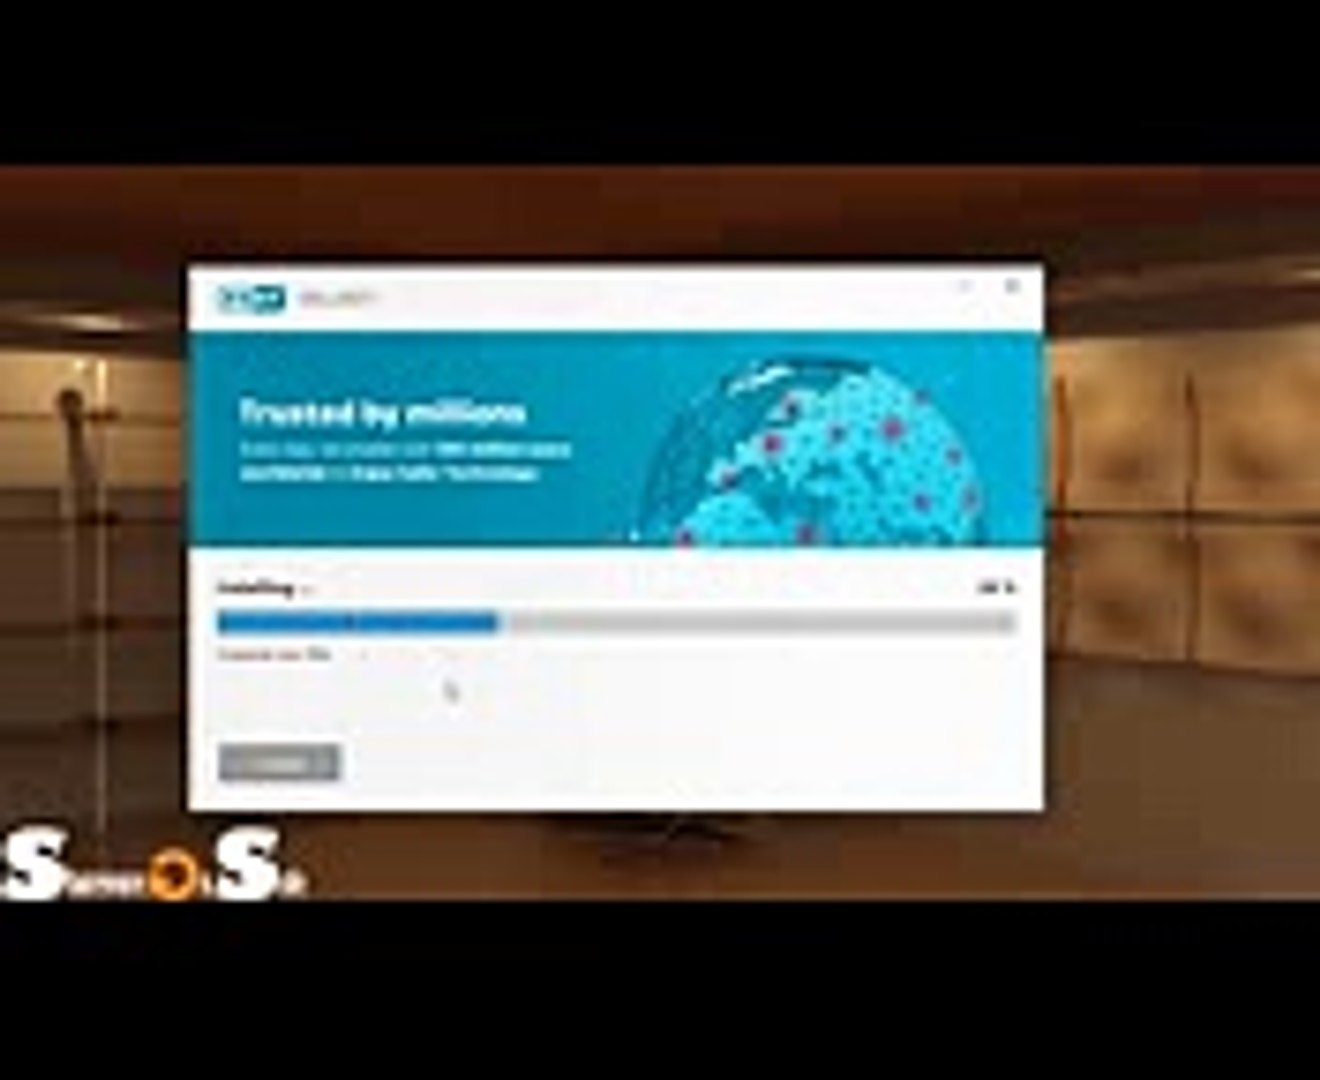 ESET Smart Security Premium! 11 Serial Key-License Key-Crack! LifeTime  Activation! ESET 2018